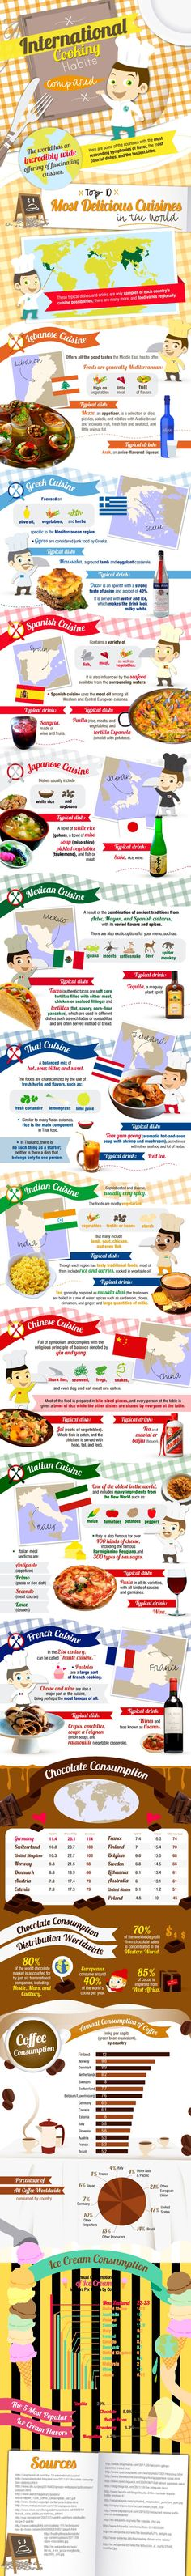 International Cooking Habits Compared #Infographic